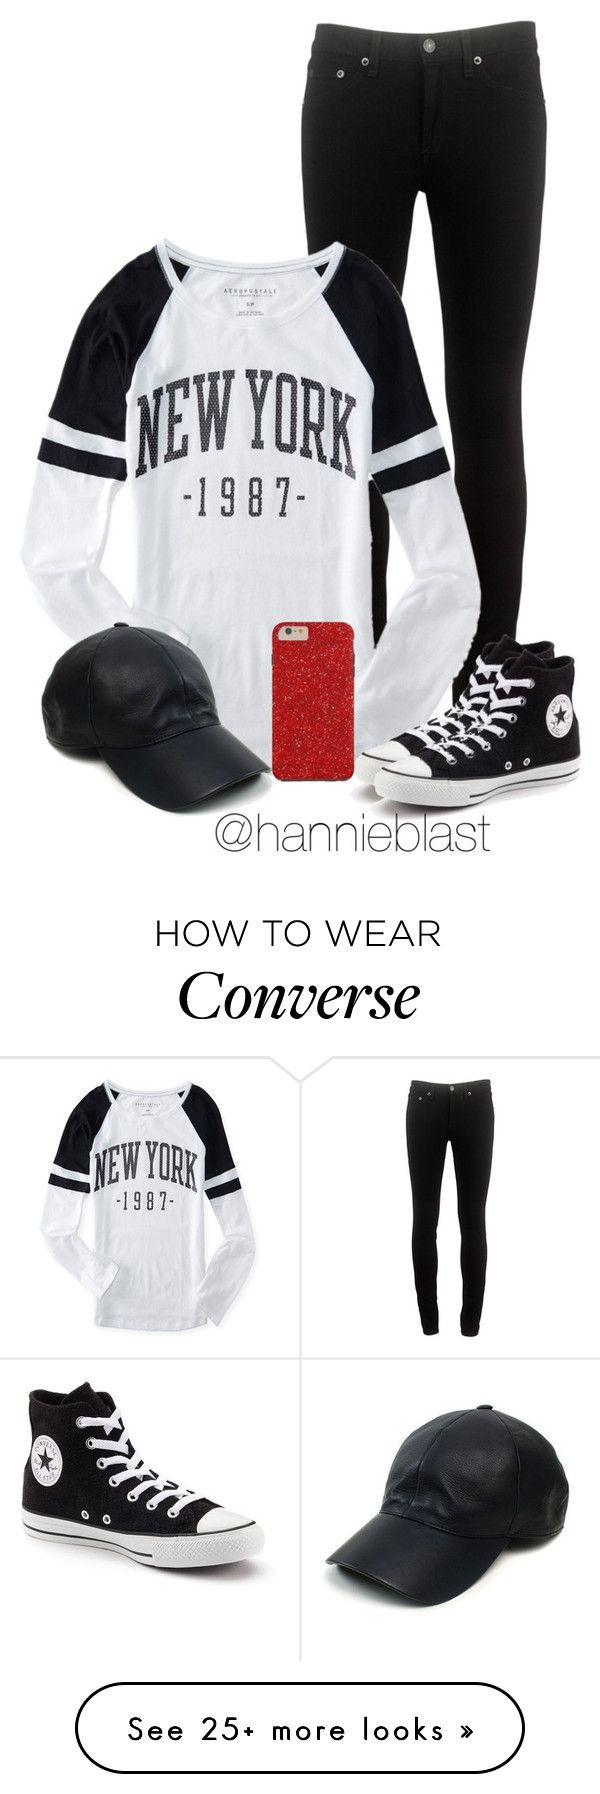 """Black and White + Red Sparkle"" by hannieblast on Polyvore featuring rag & bone, Aéropostale, Converse and Vianel"